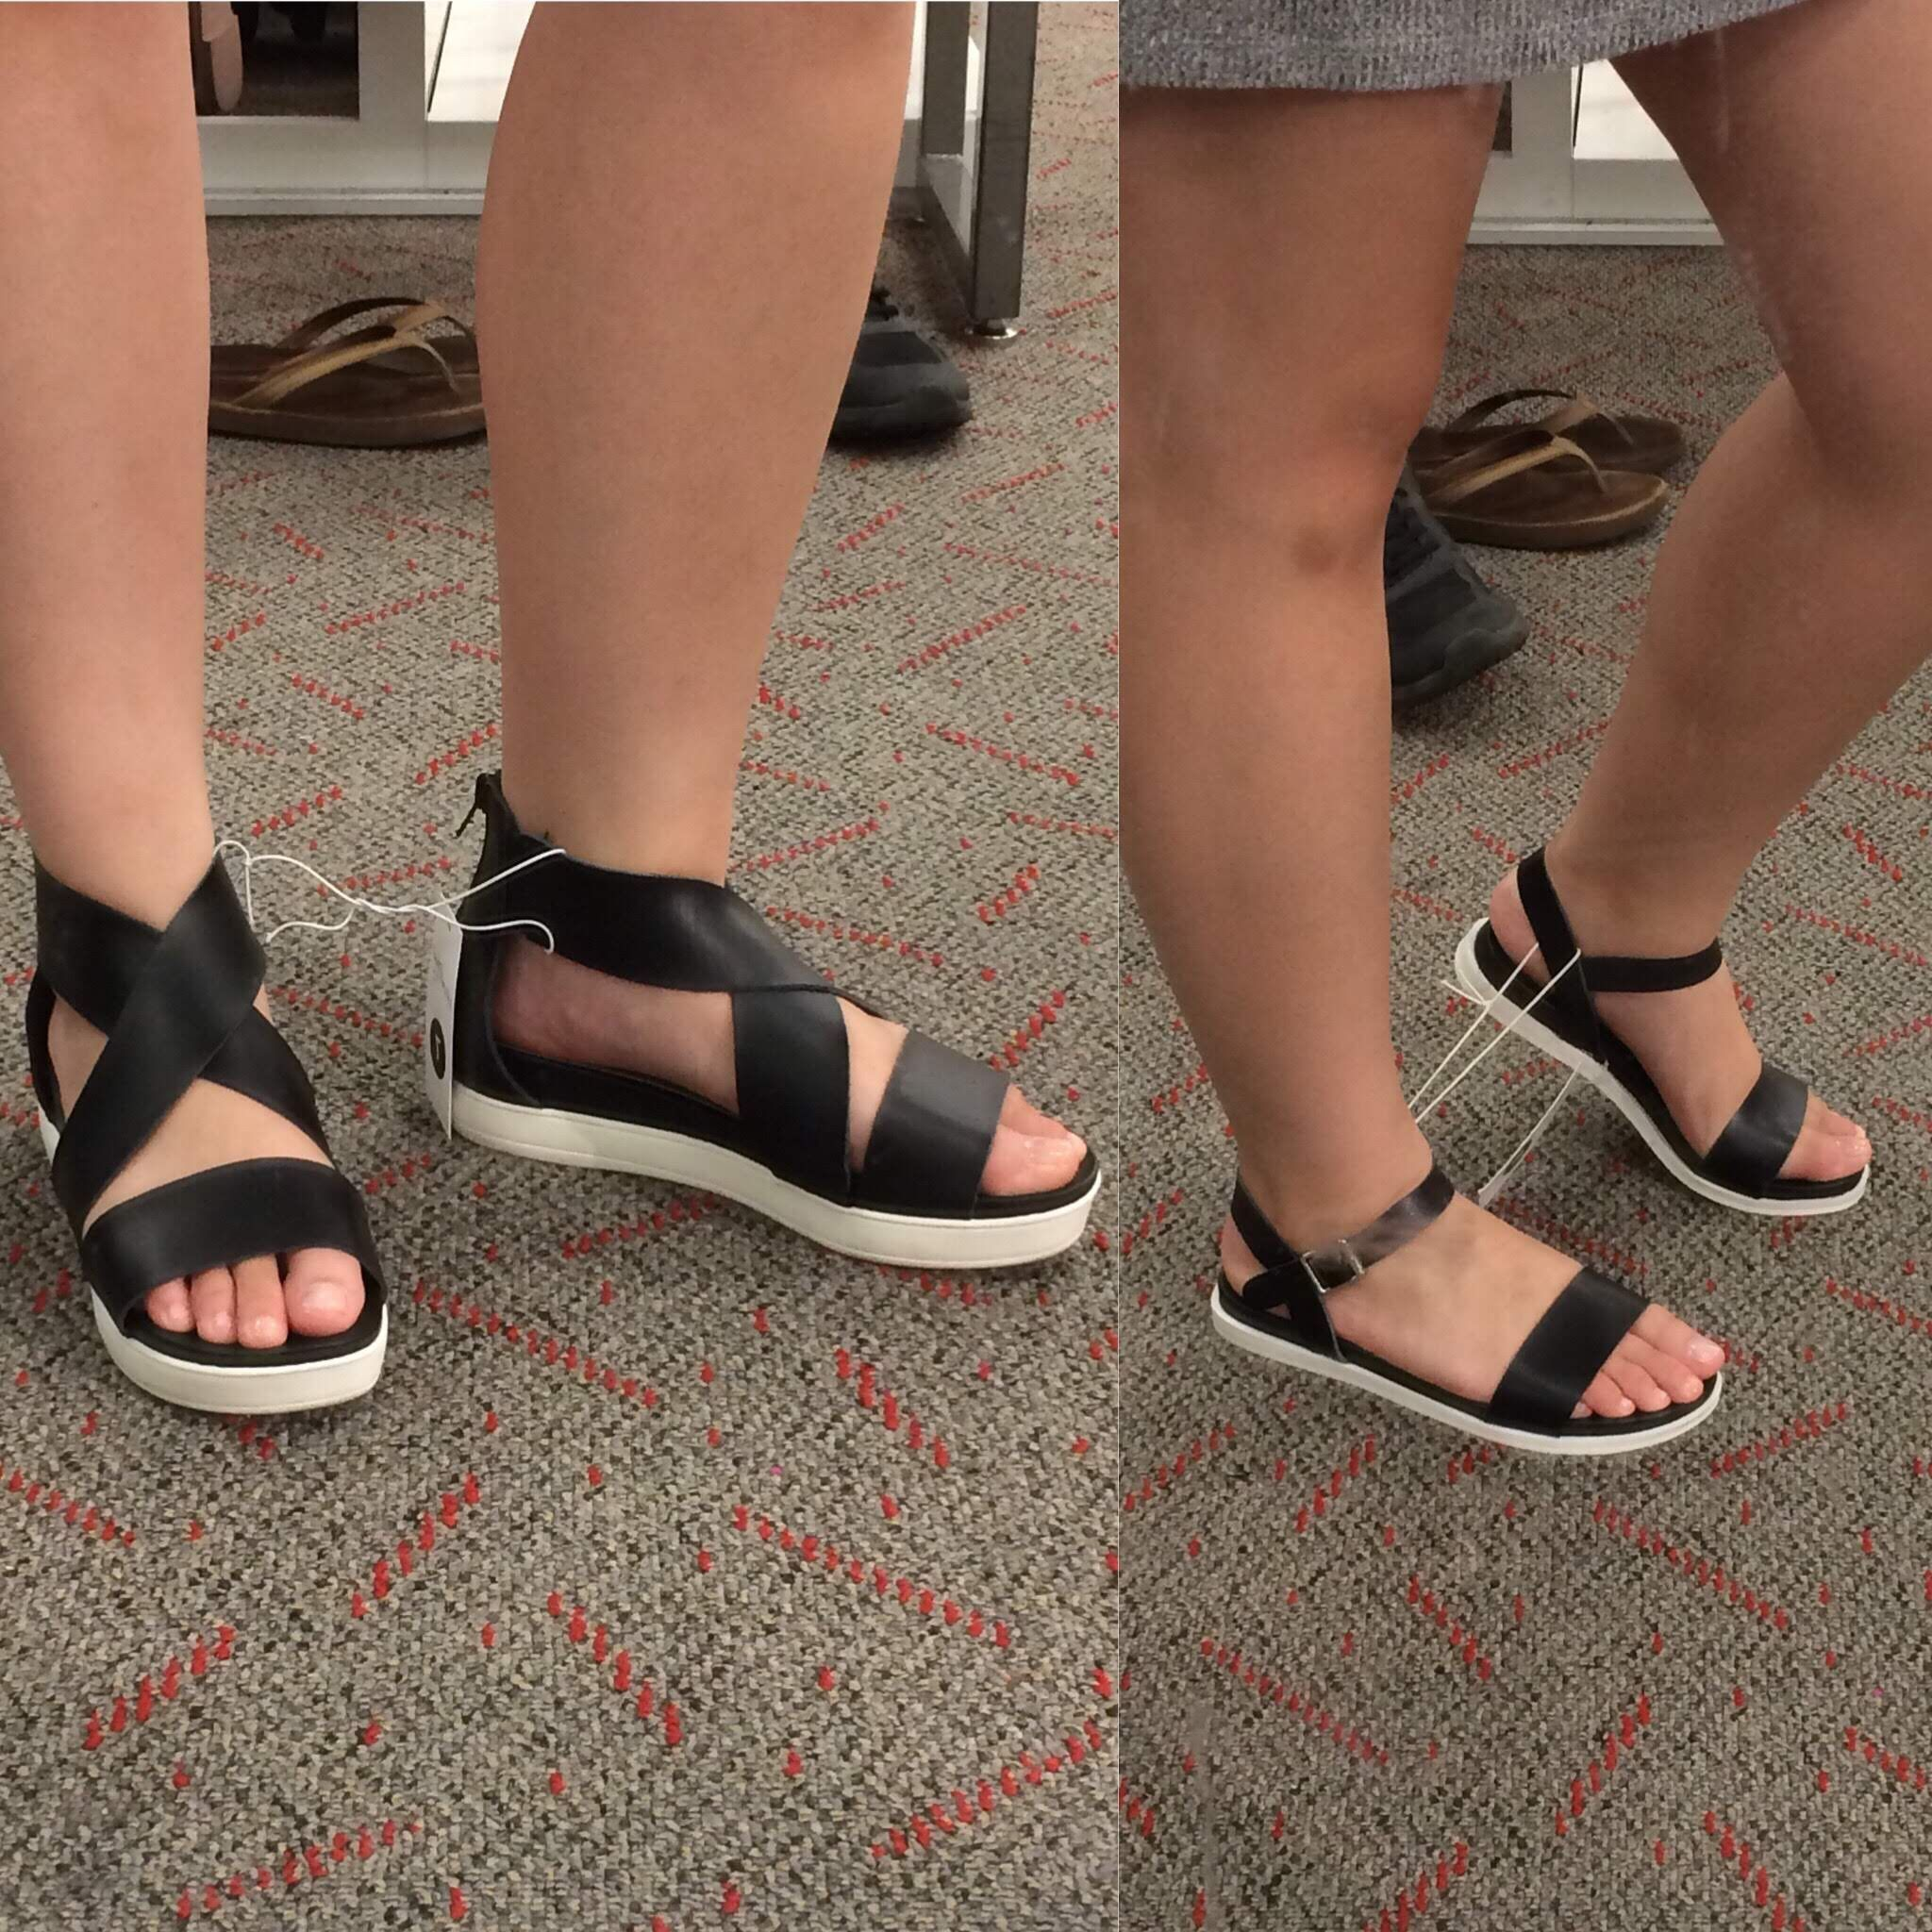 b5871e34fdc5c7 Super cute strappy sandals from Target! ☀  target  summer  shoes ...